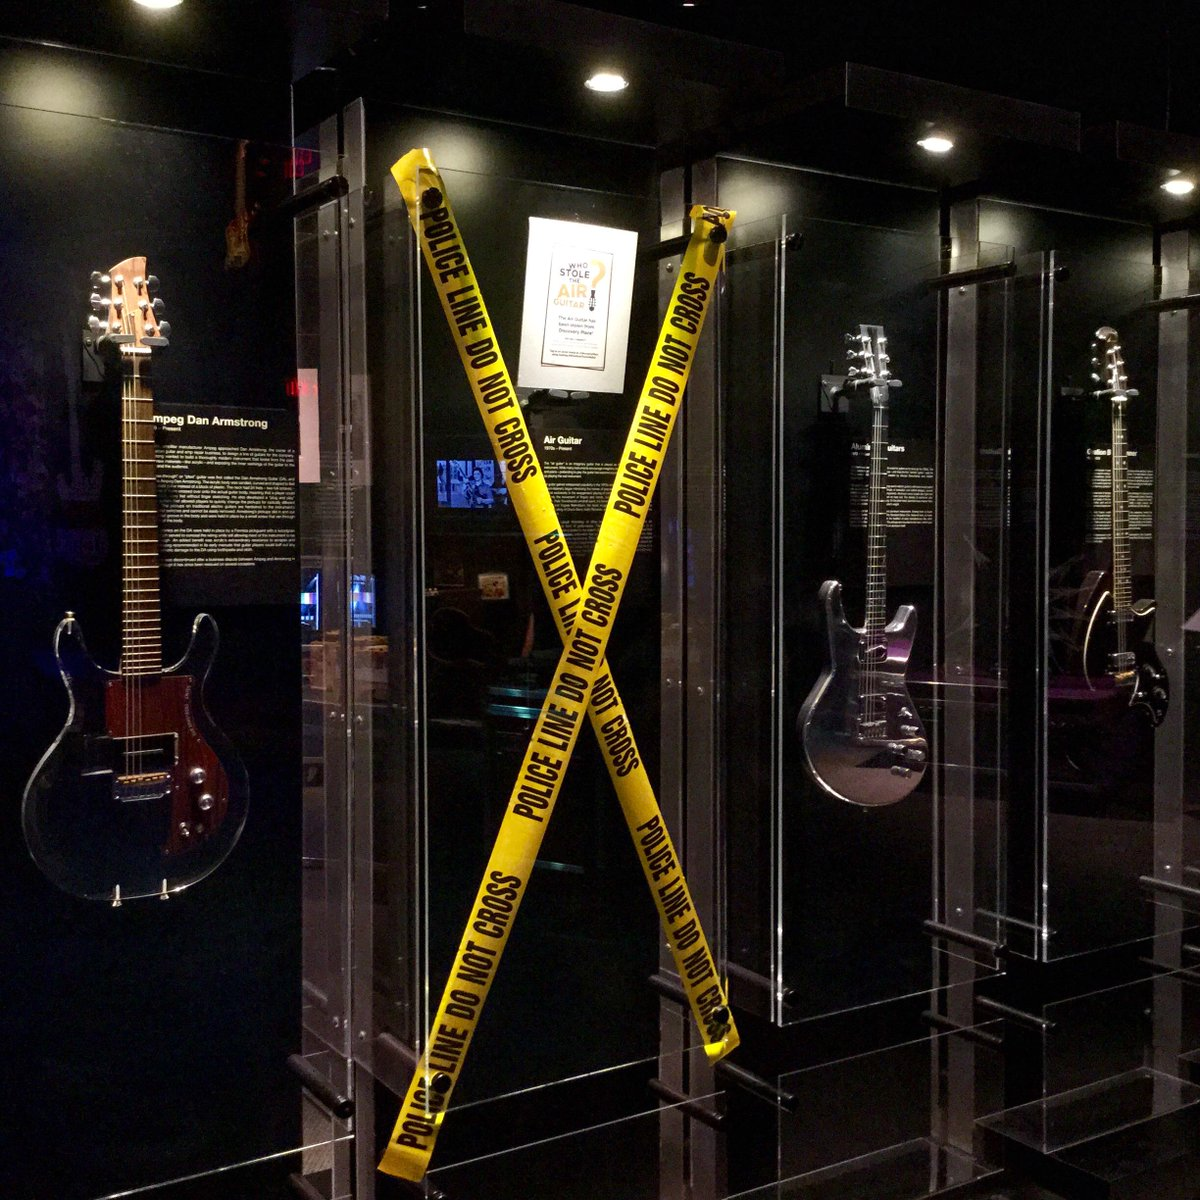 BREAKING: Air Guitar Stolen from Discovery Place Exhibition. Have you seen it? #WhoStoleTheAirGuitar #clt http://t.co/Vu7qgI0FLV